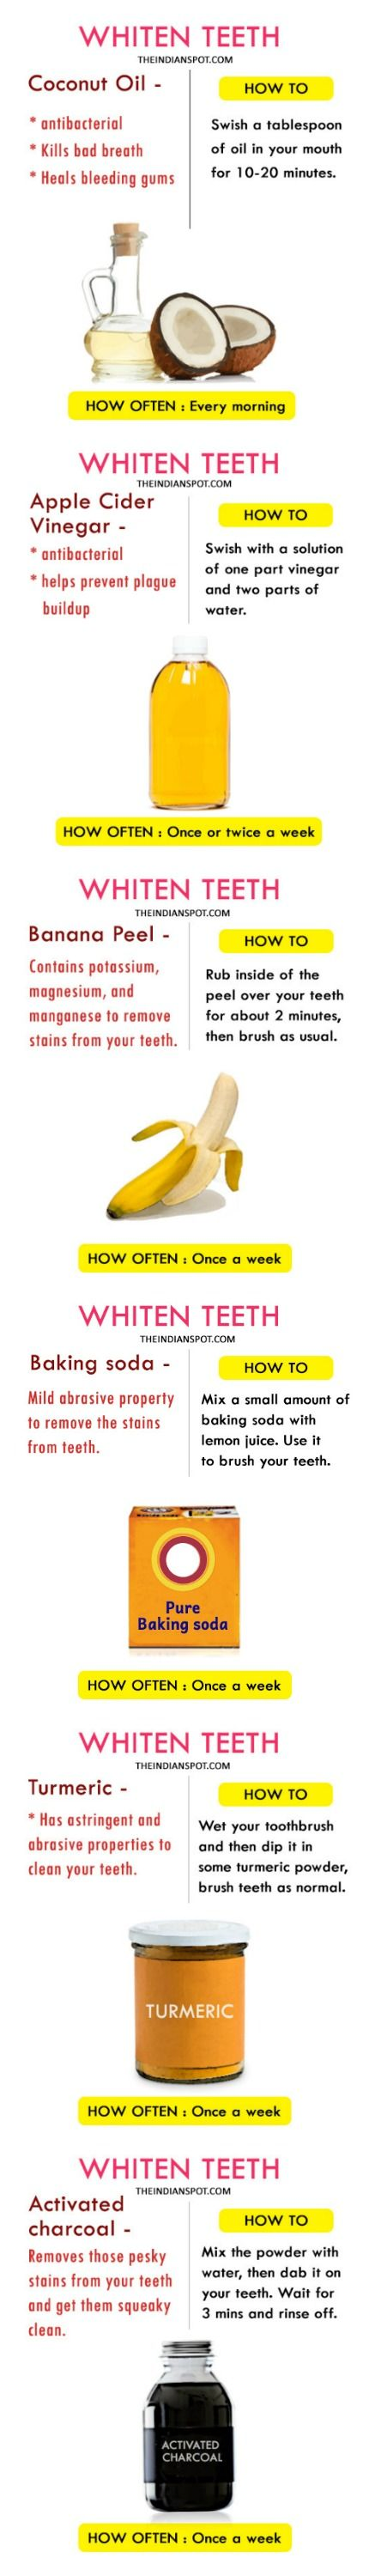 Whiten teeth recipe.